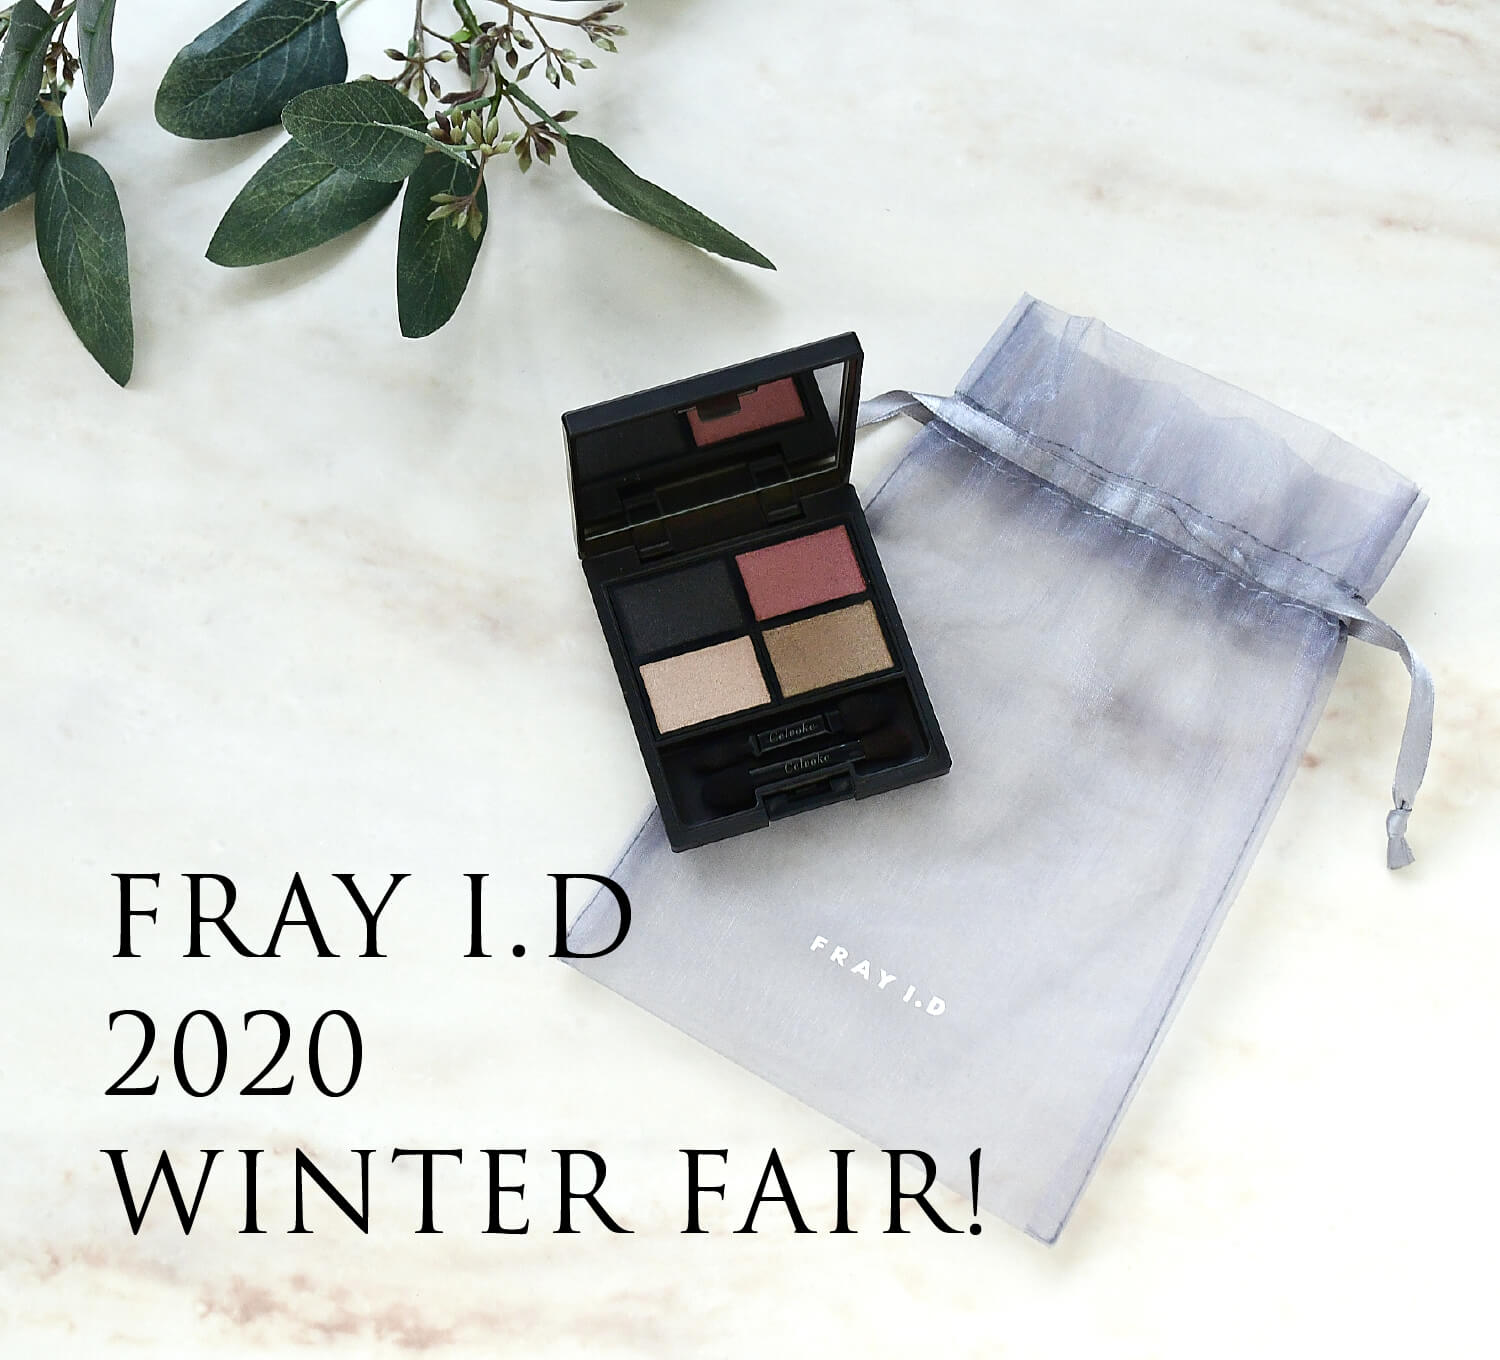 FRAY I.D 2020 WINTER FAIR!